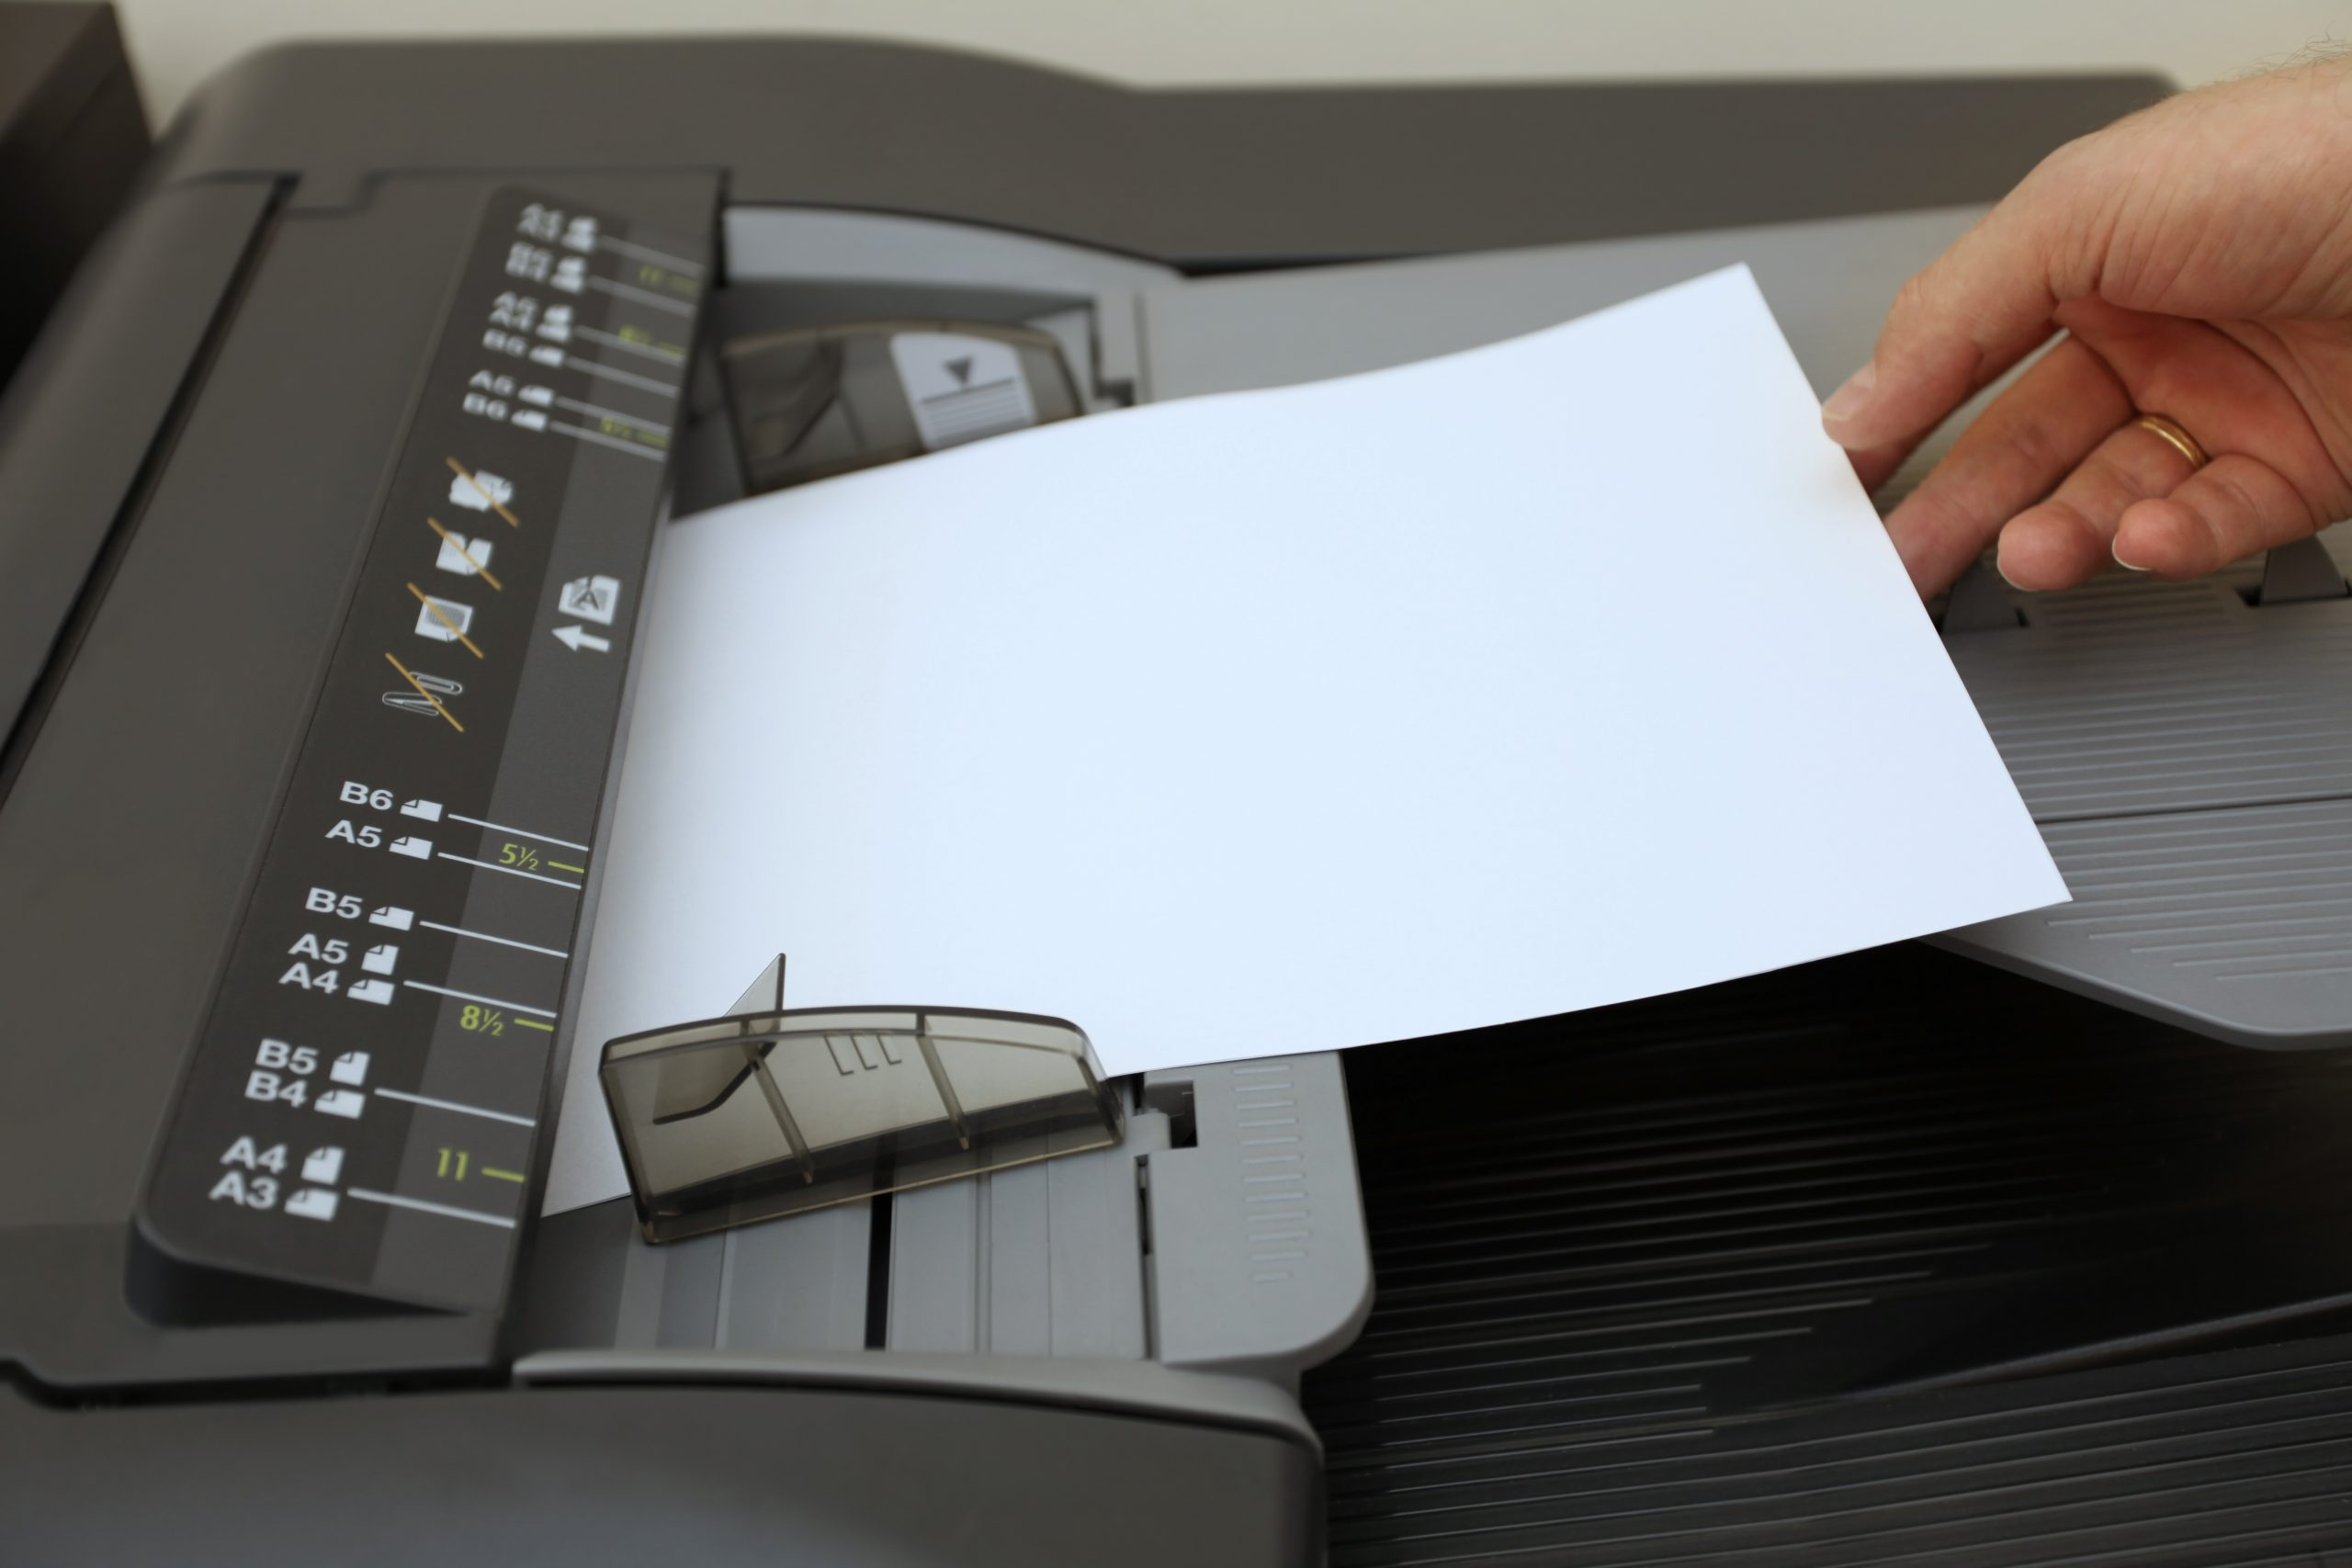 Best Dot Matrix Printer 2020: Shopping Guide & Review